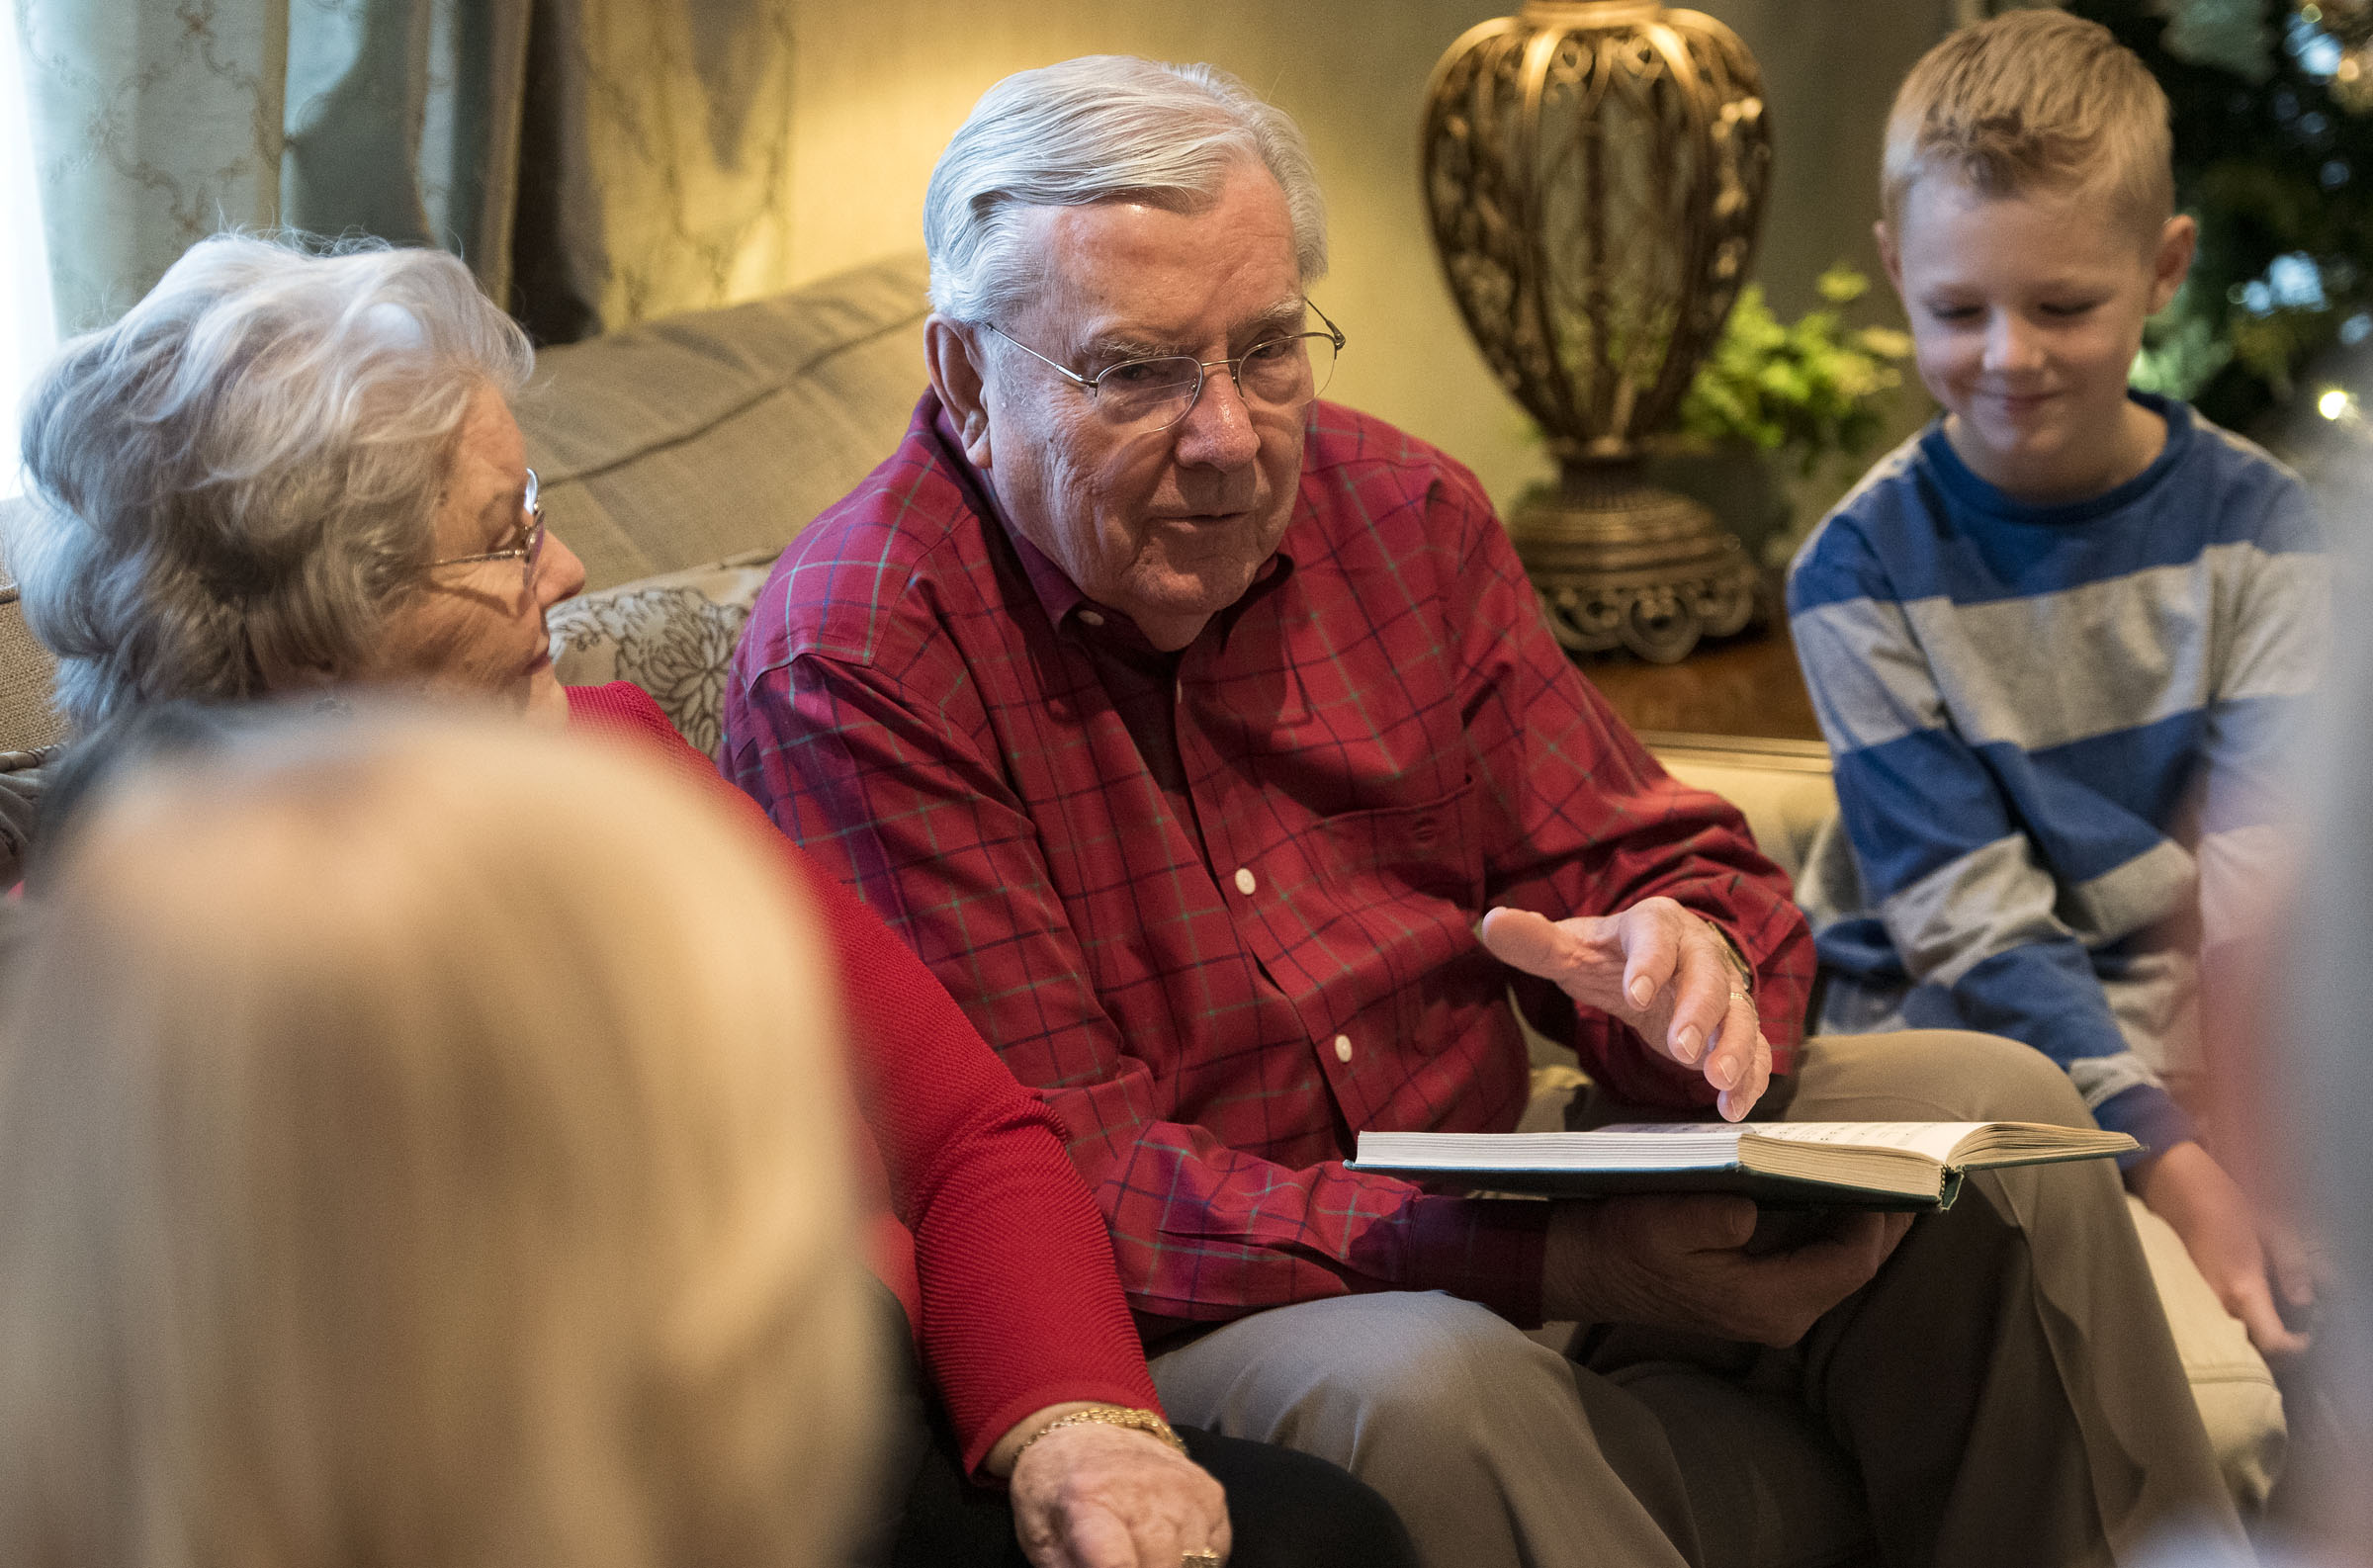 Then-Elder M. Russell Ballard tells a story to his family members during a council meeting in Salt Lake City on Dec. 26, 2016. He has been an energetic advocate of the council system in the Church stretching at least as far back as October 1993, when he talked on that subject in general conference for the first time.